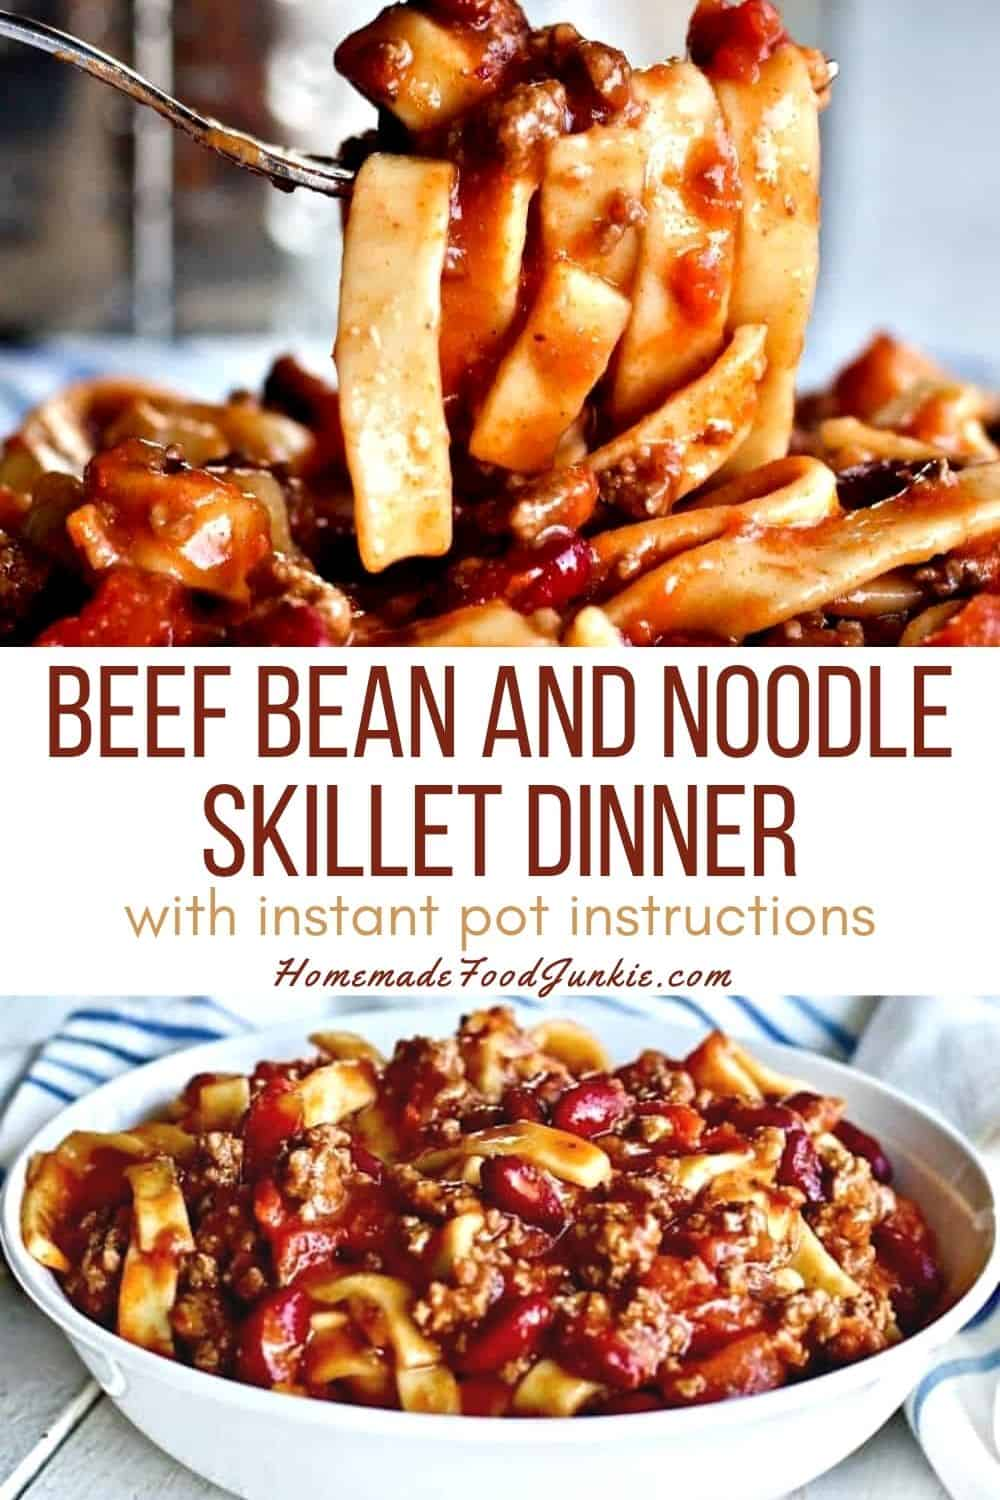 Beef Bean And Noodle Dinner-Pin Image